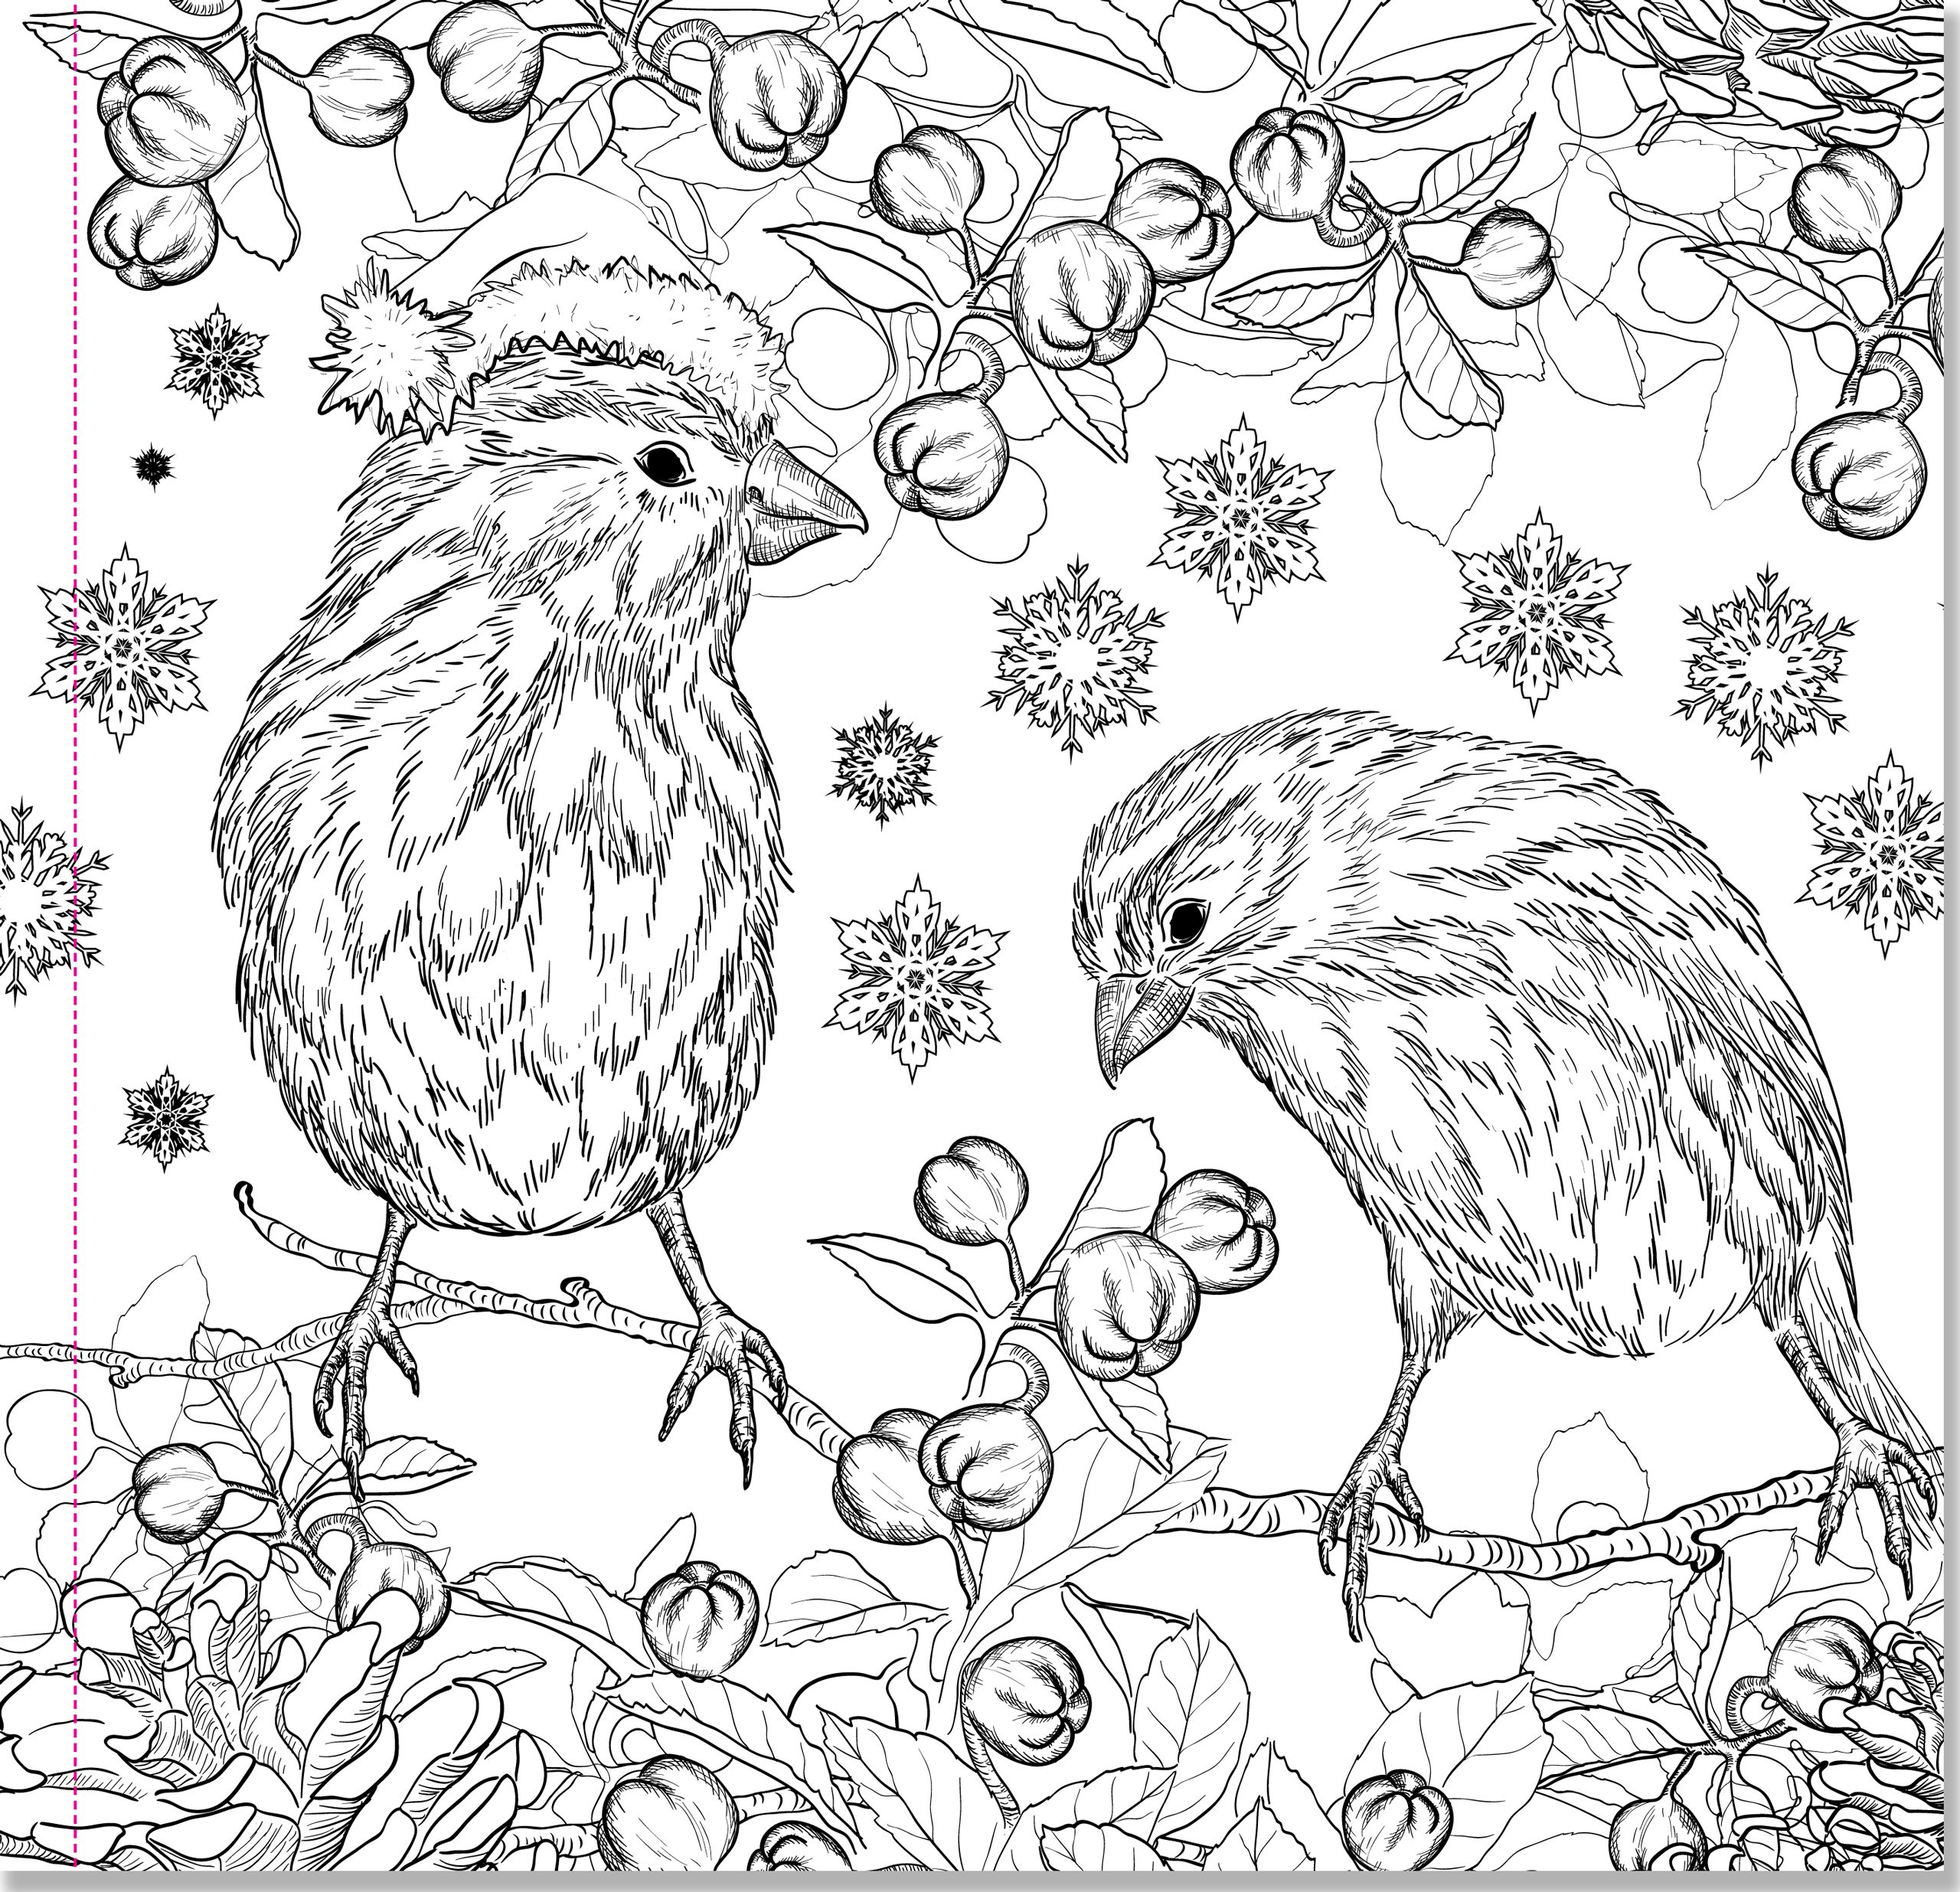 amazon com christmas designs adult coloring book 31 stress on winter magic beautiful holiday patterns coloring book for adults